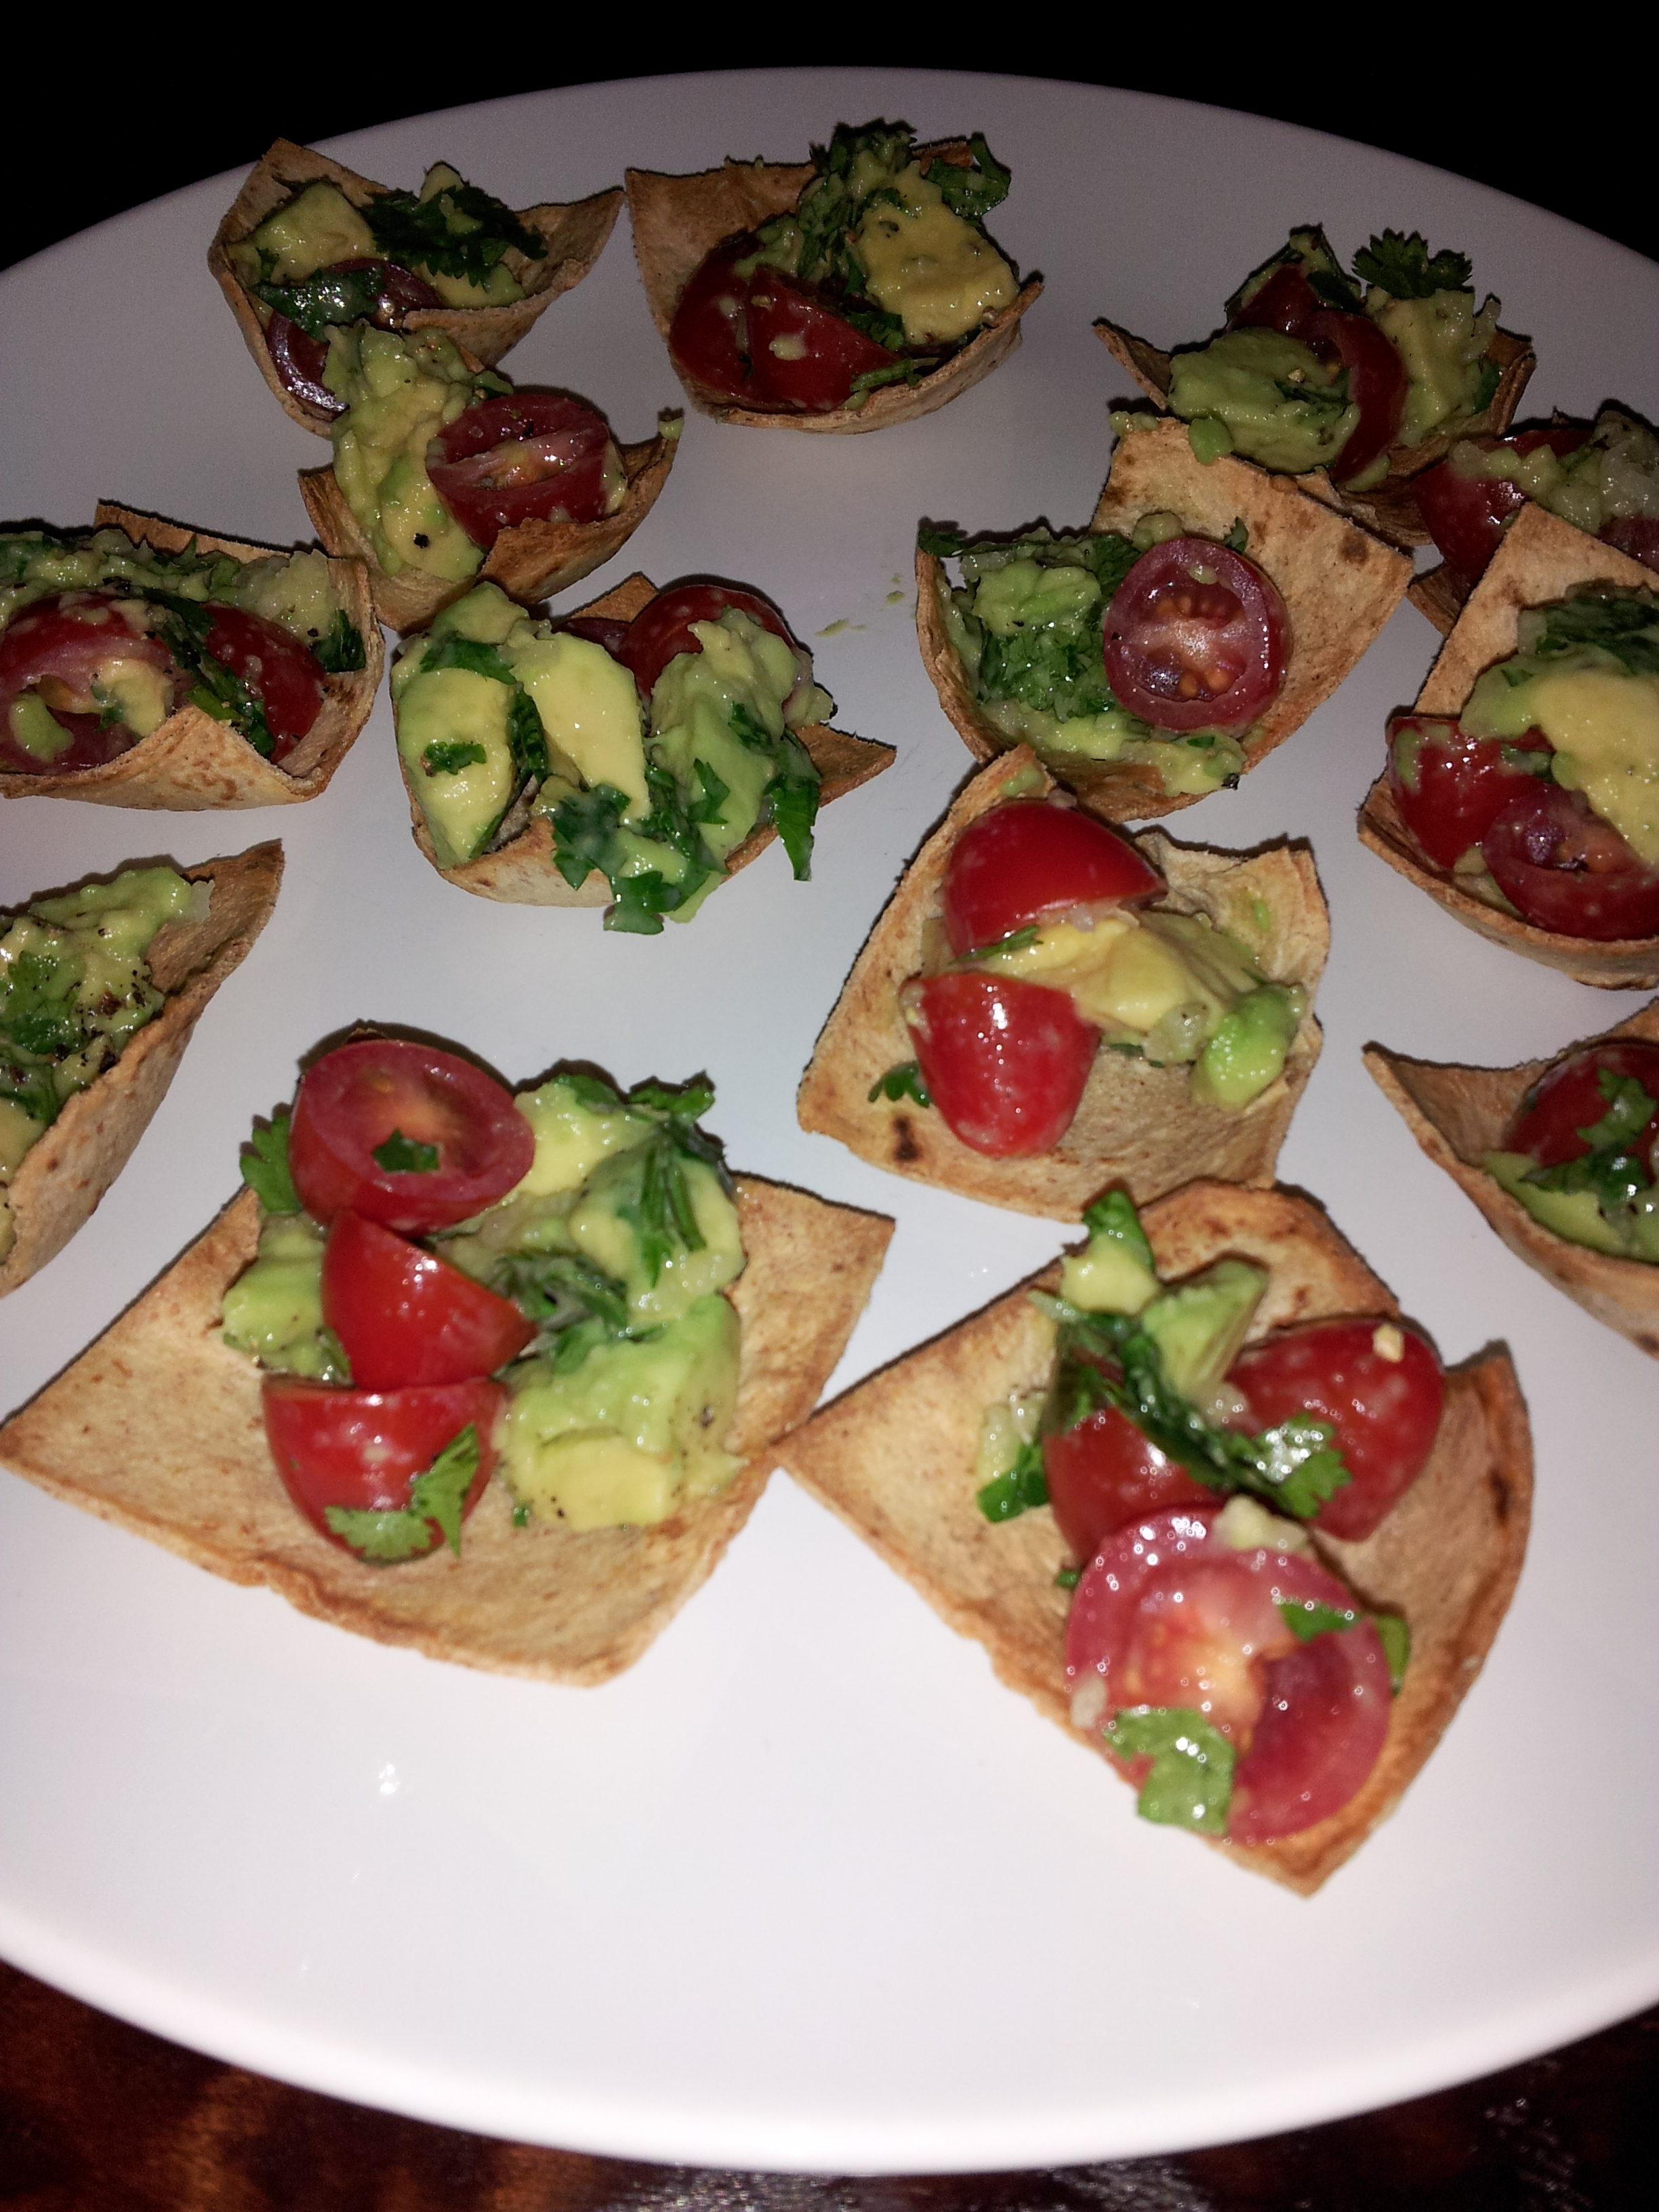 pampered chef avocado tomoato chips